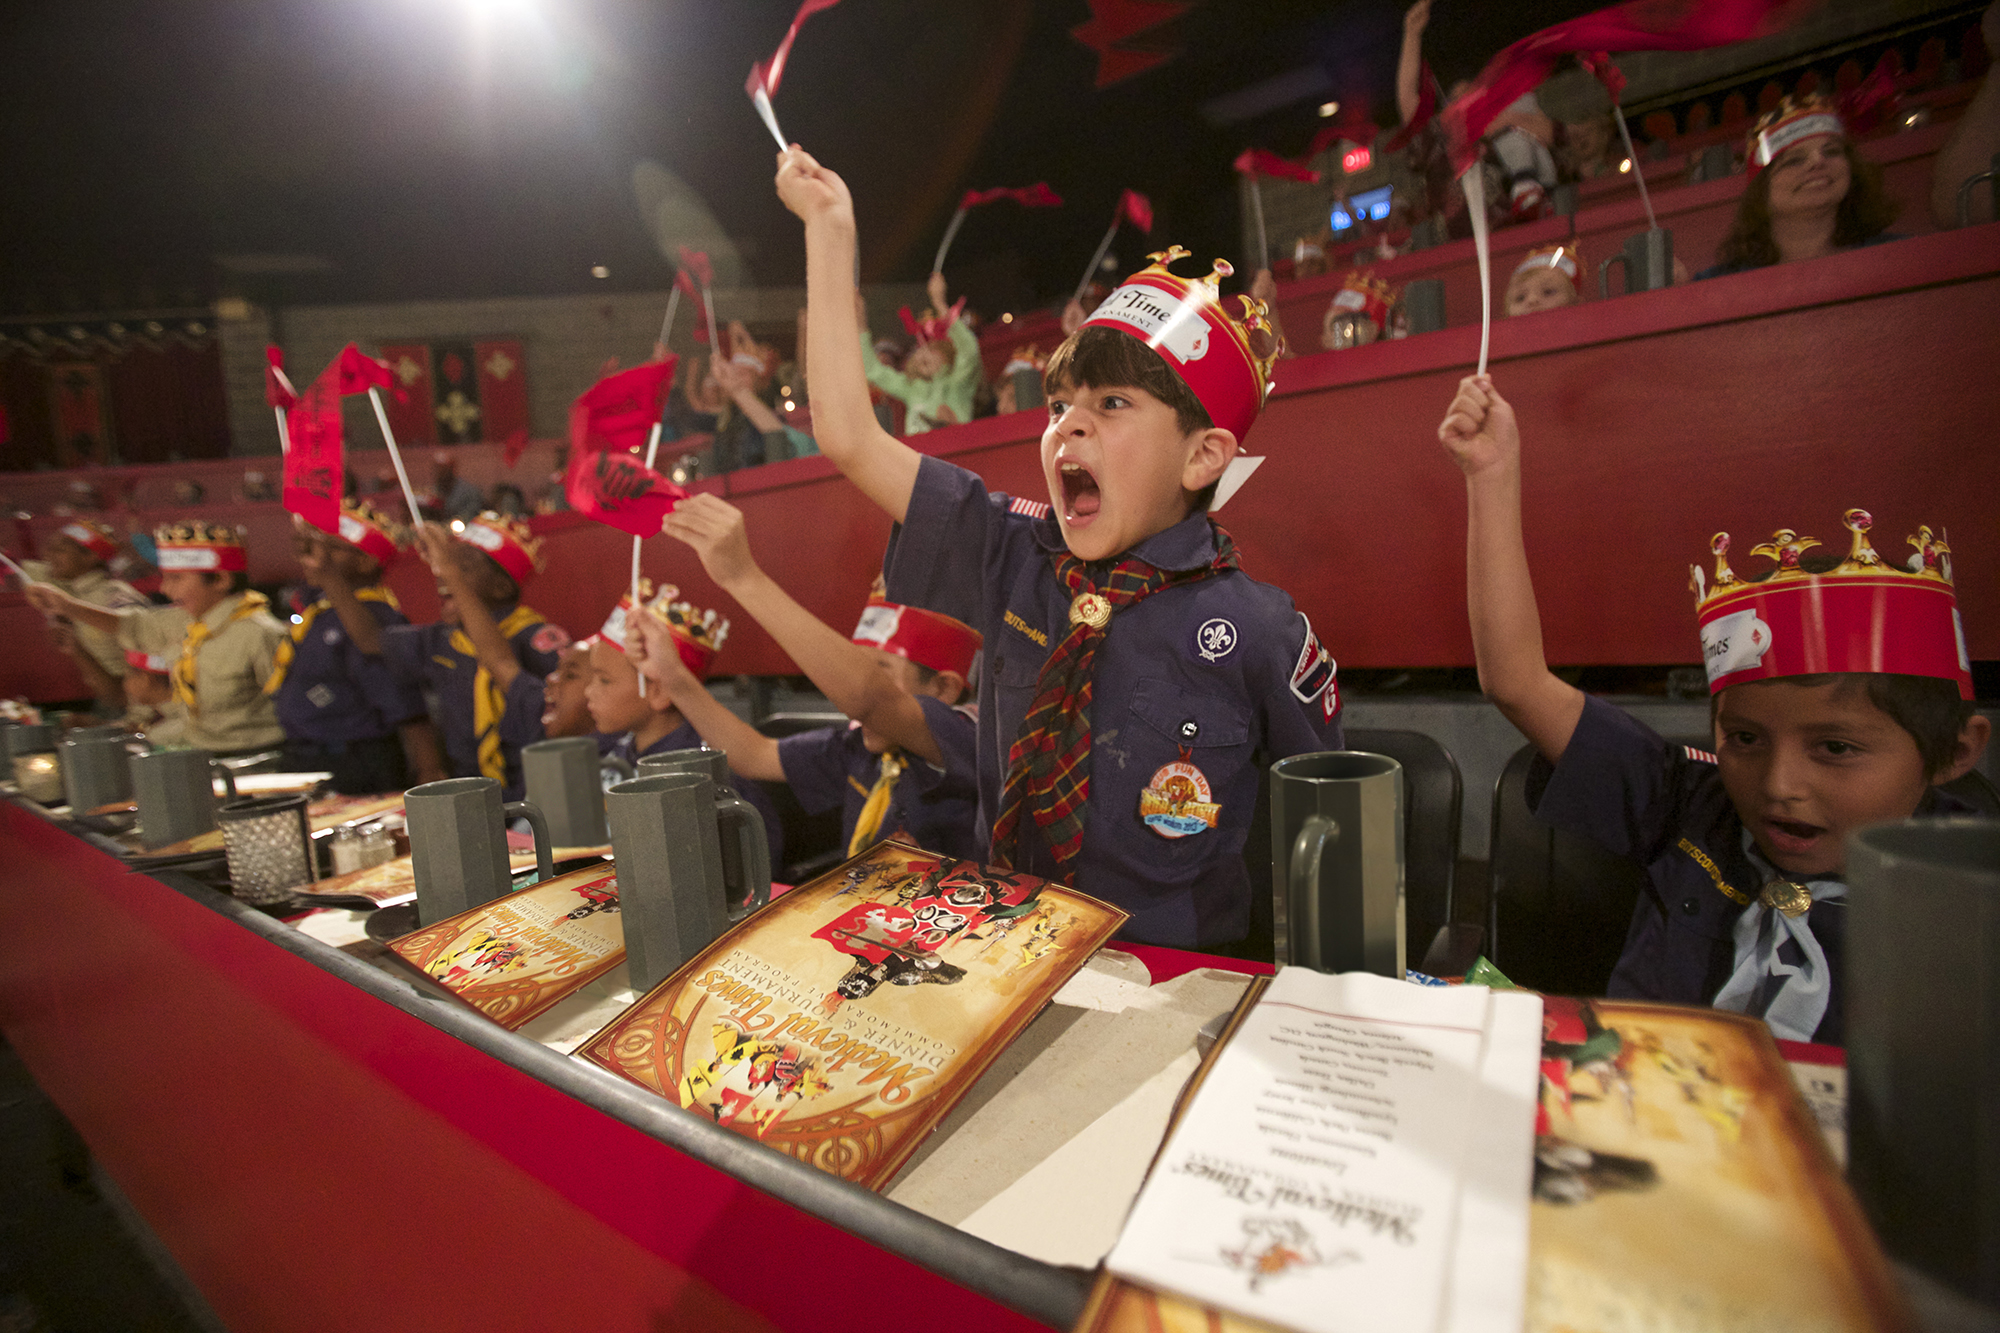 cub scout cheering and waving banner in the arena